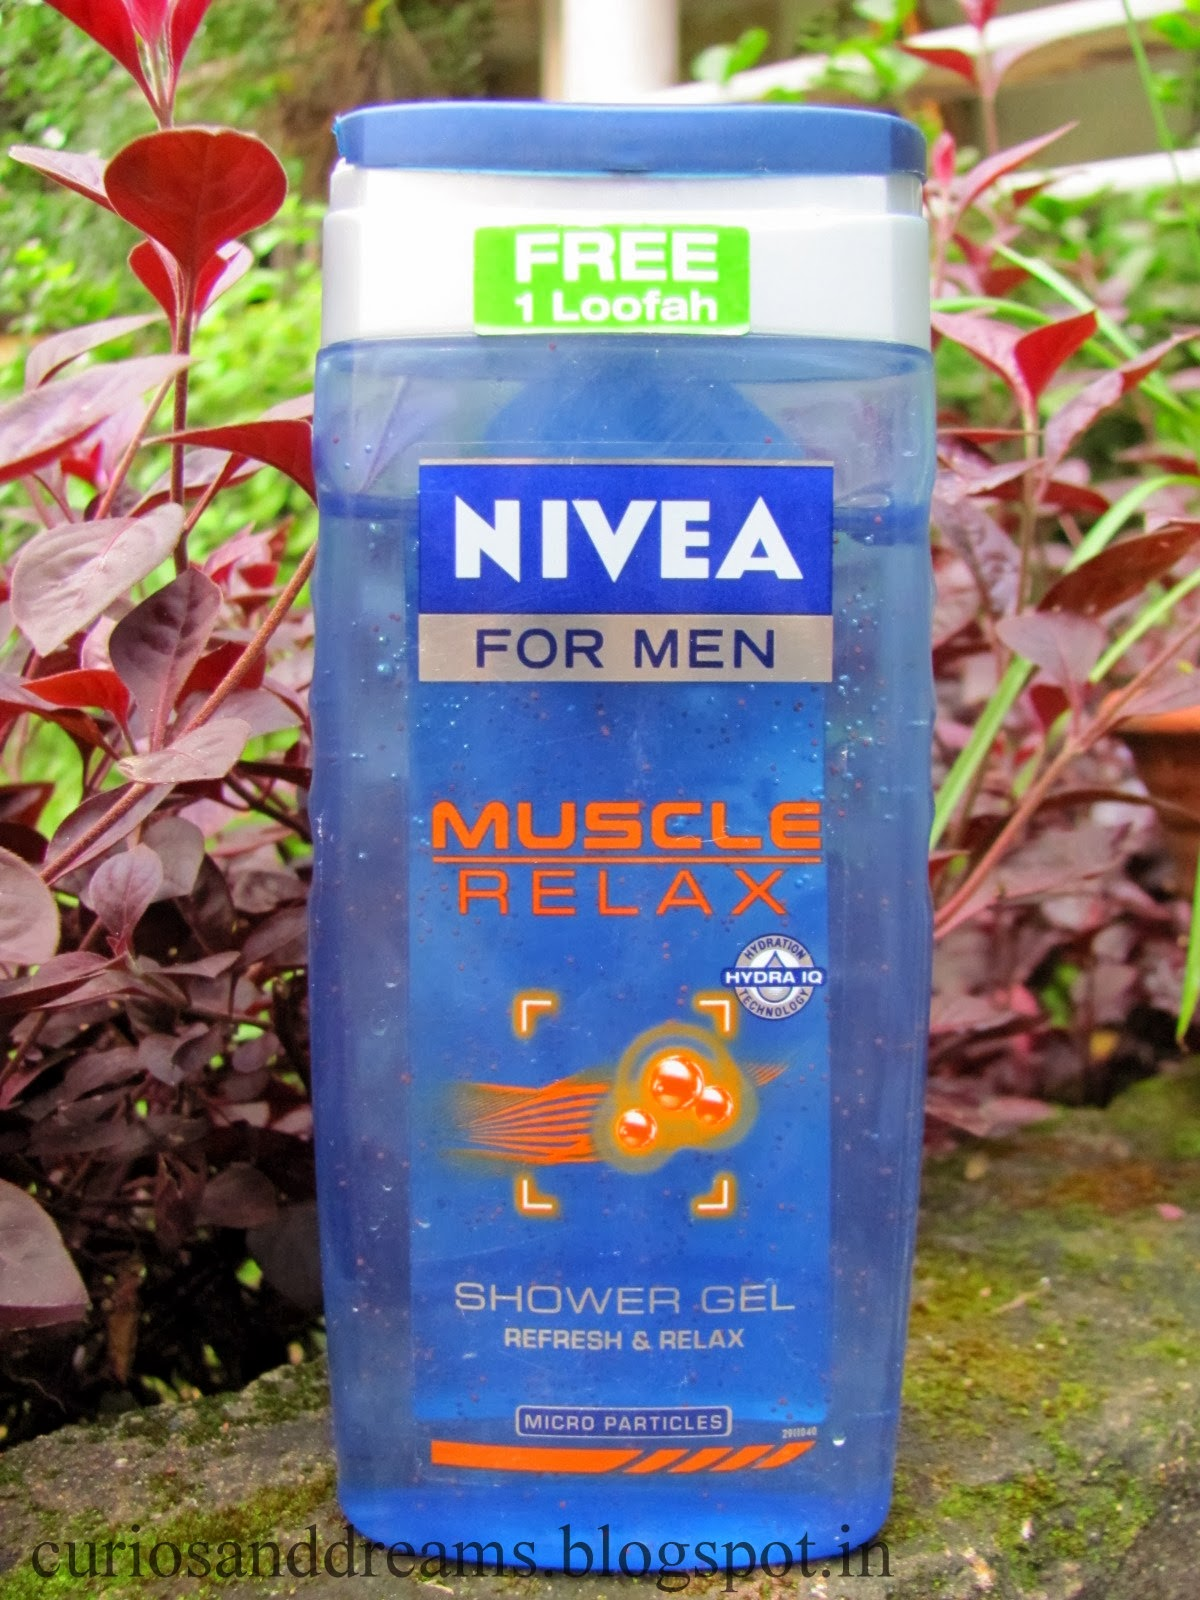 Nivea Muscle Relax Shower Gel review